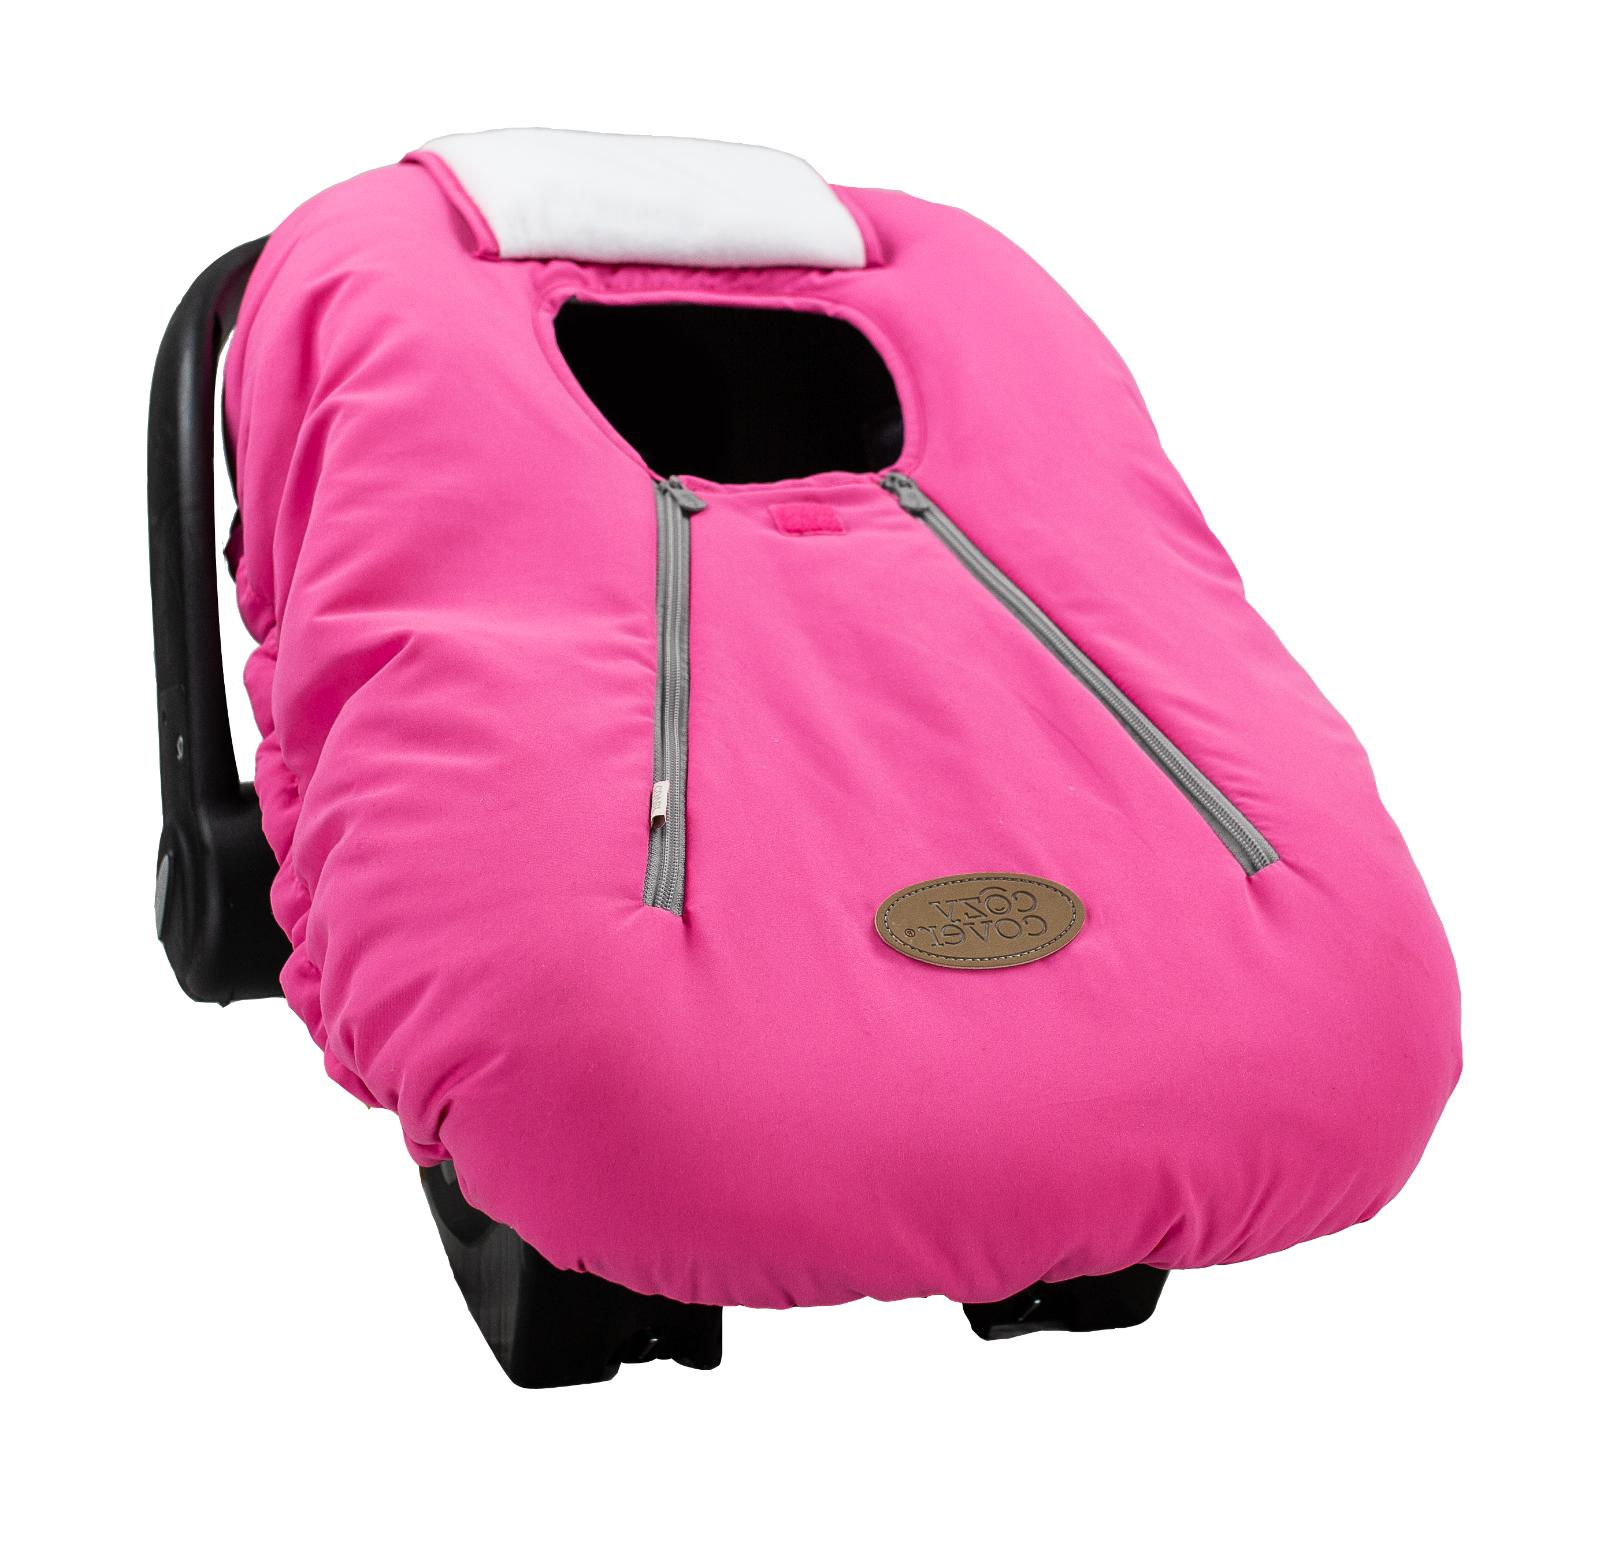 New Cover Infant Carrier Cover Baby Car Cover Color